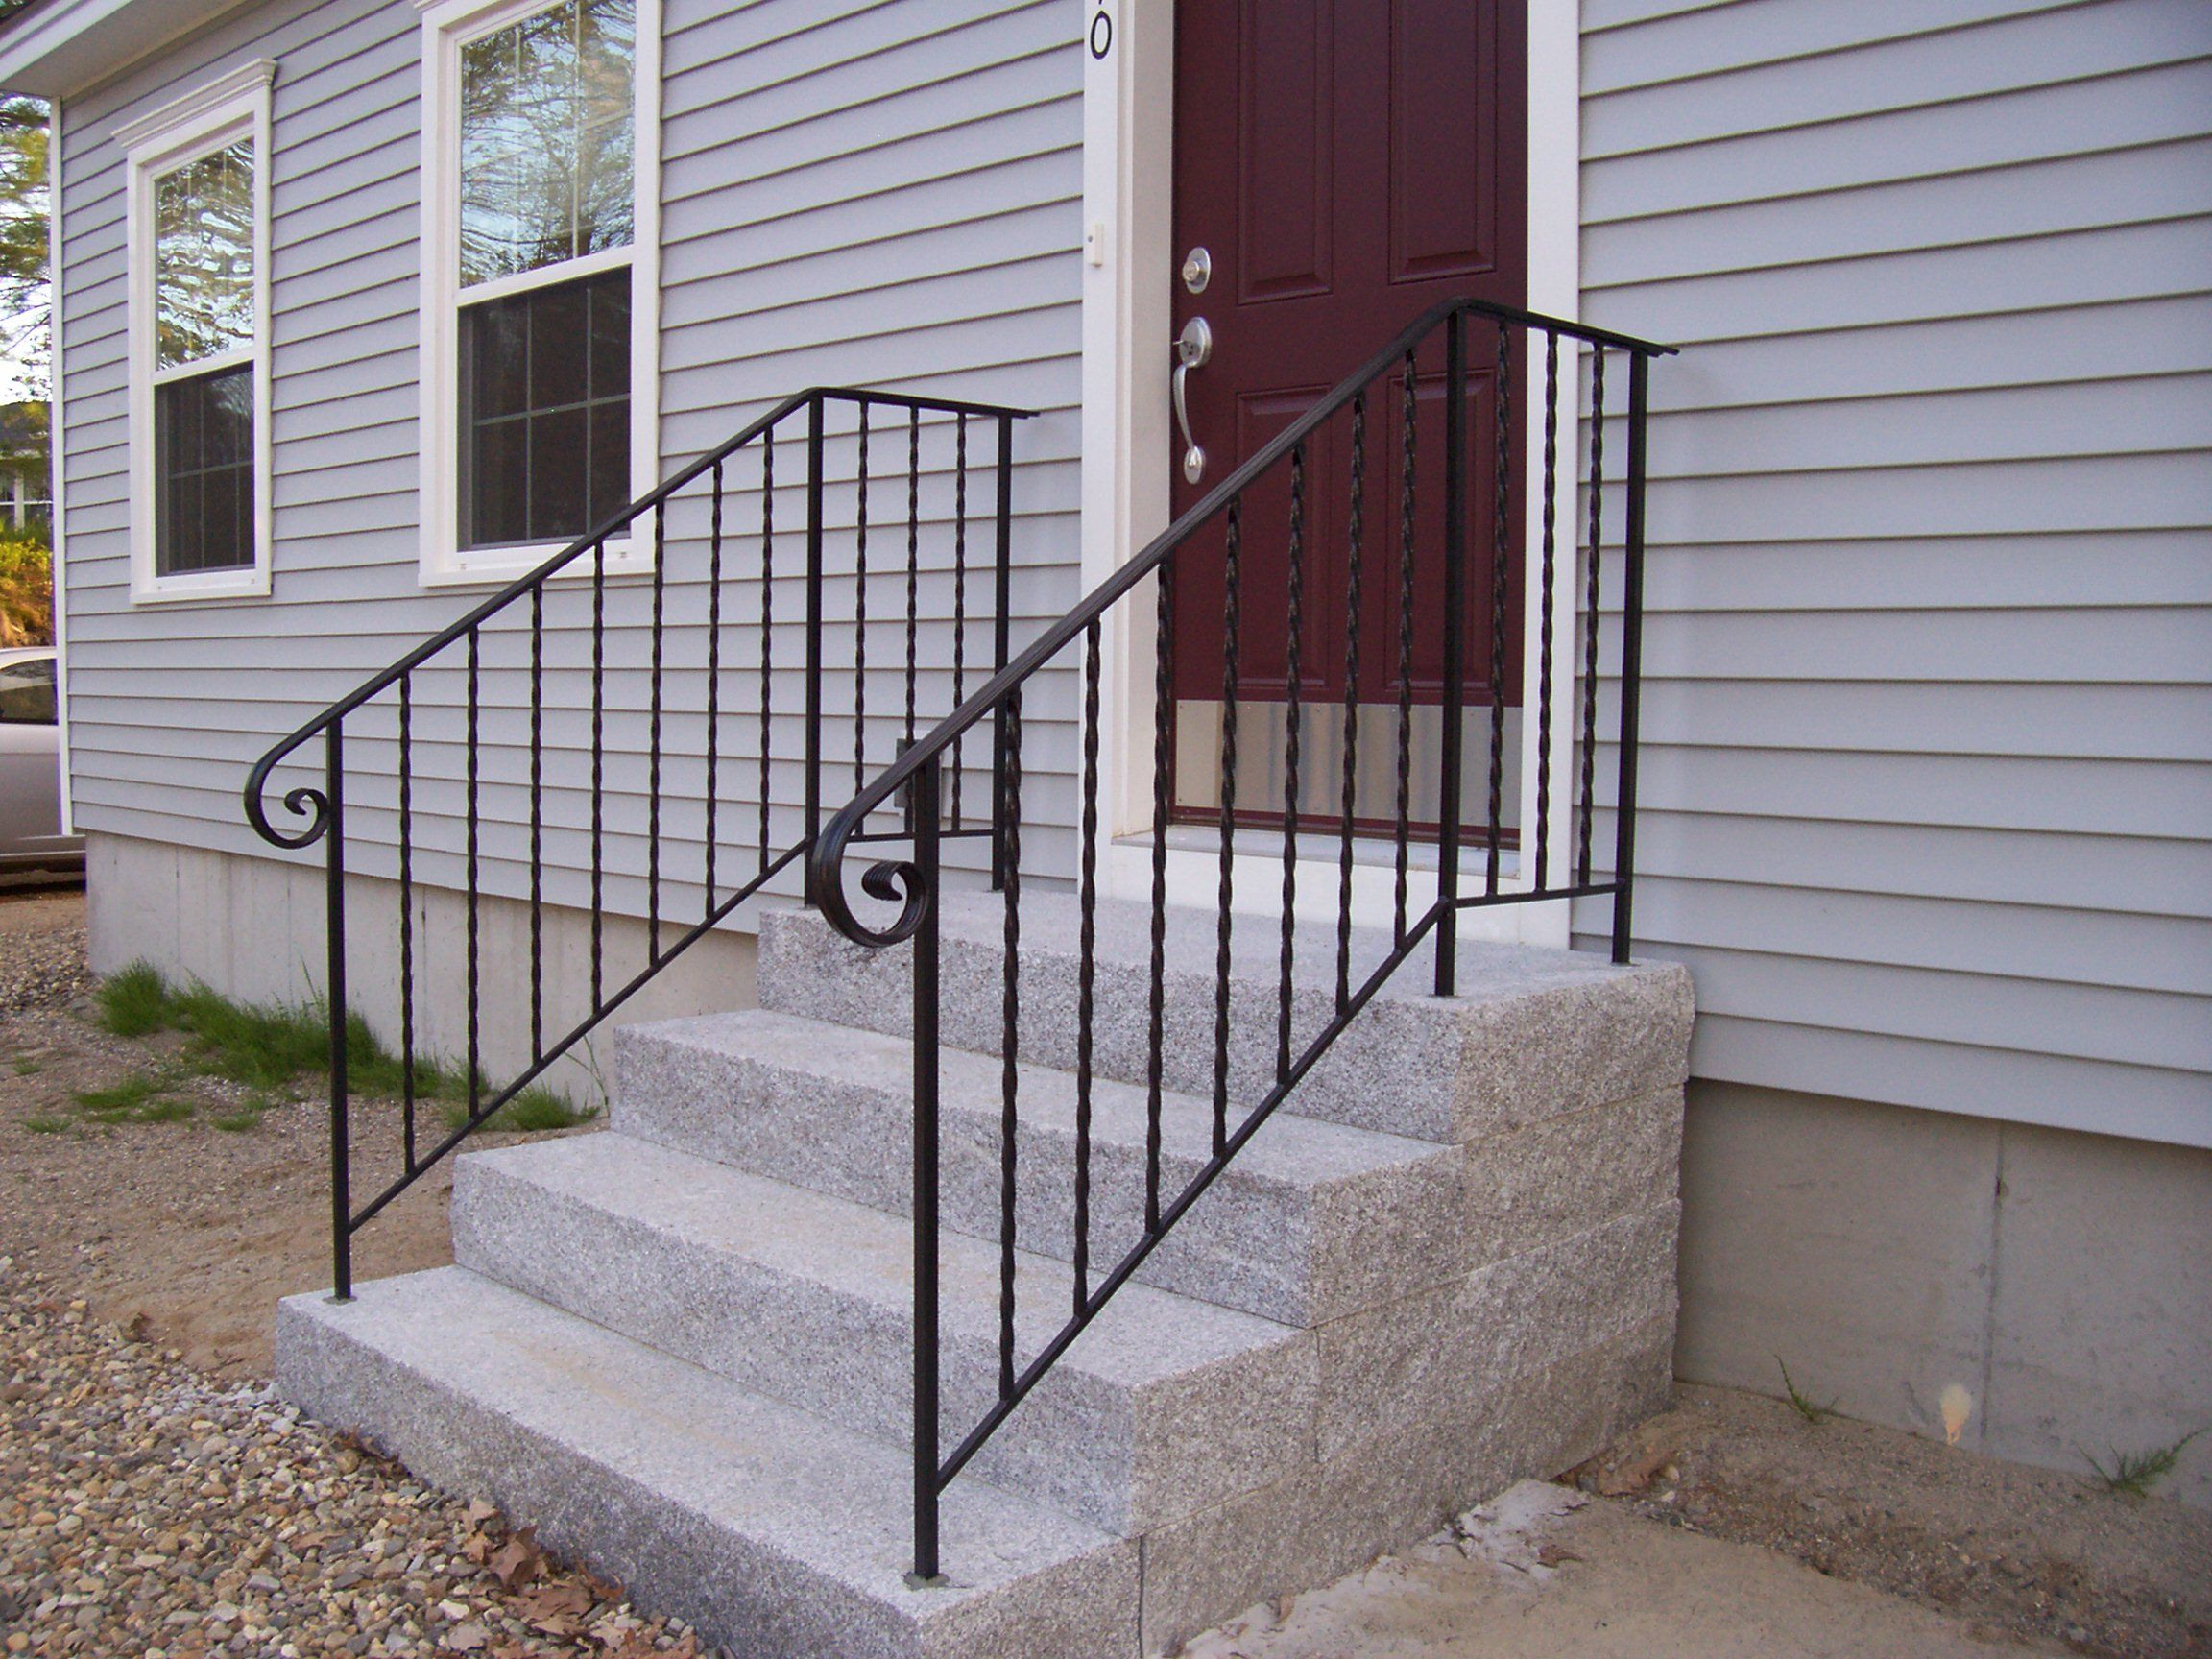 100_4199.jpg (2304×1728) | Railings | Pinterest | Wrought iron ...